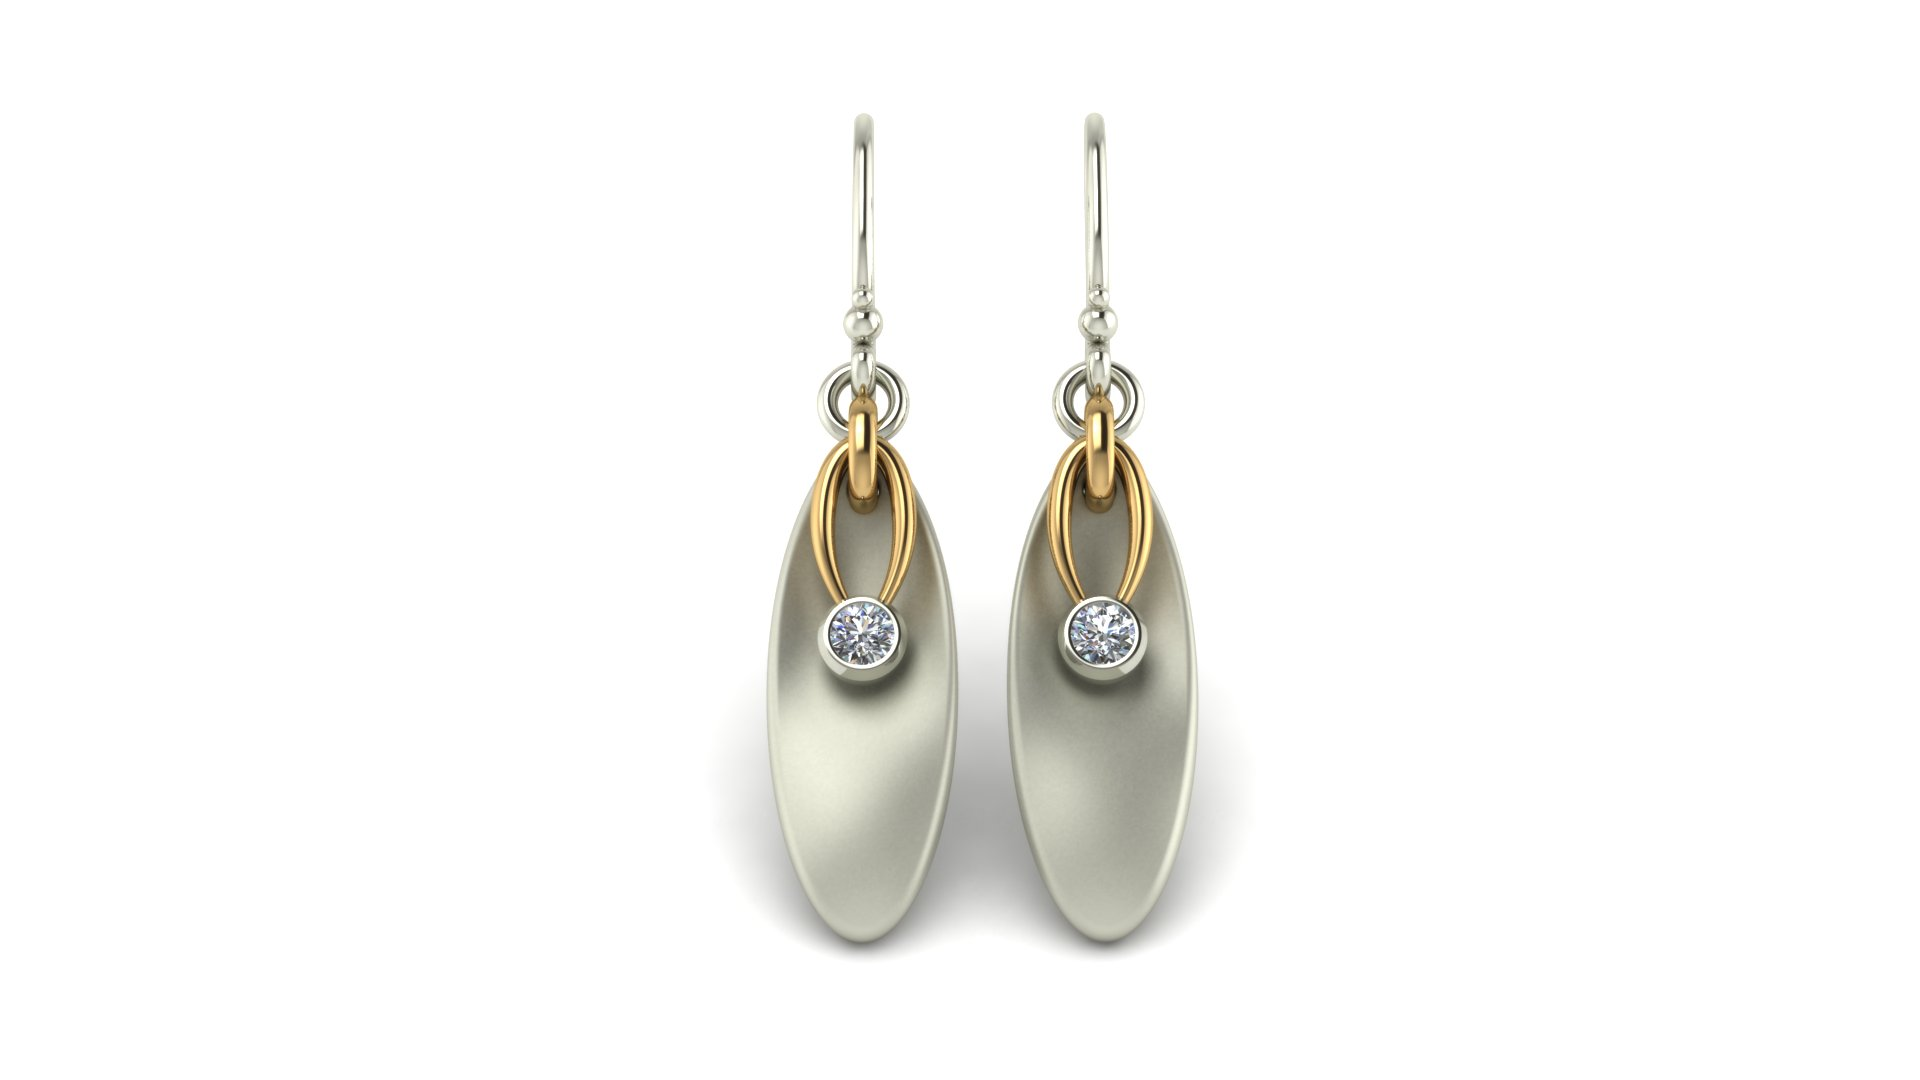 OVAL 2-TONE DROP EARRINGS